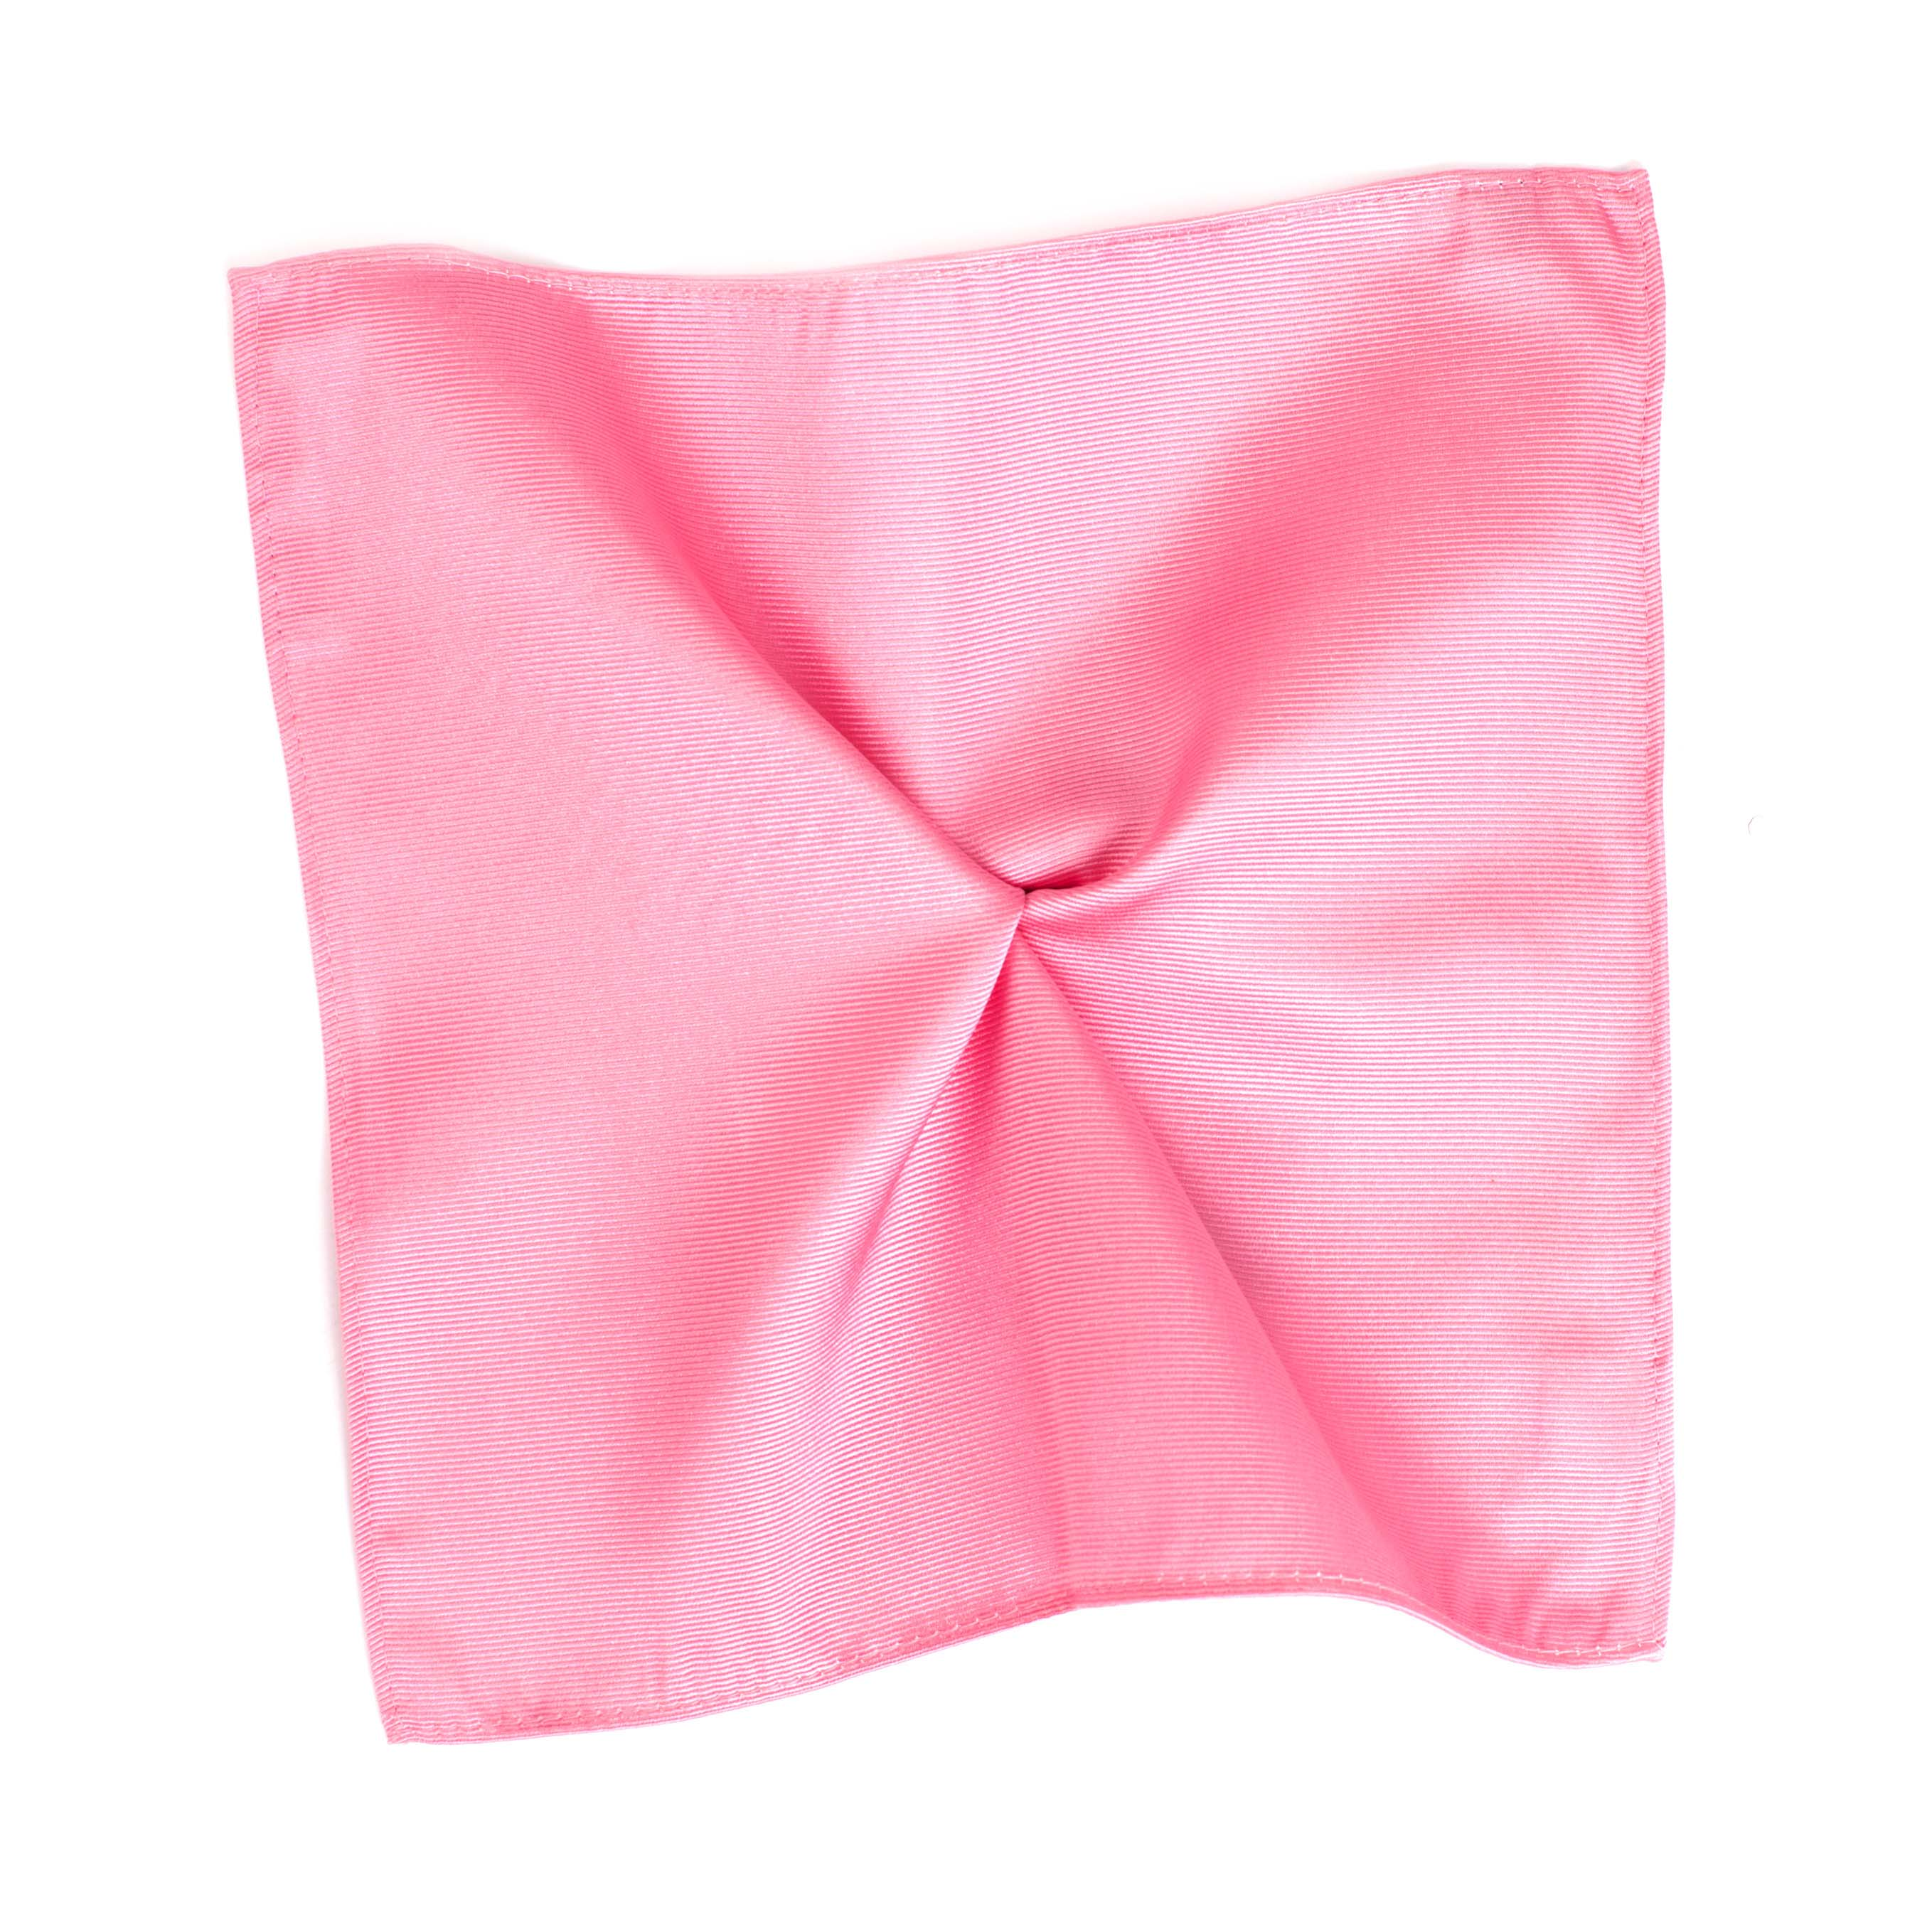 Pocket square classic pink ribbed